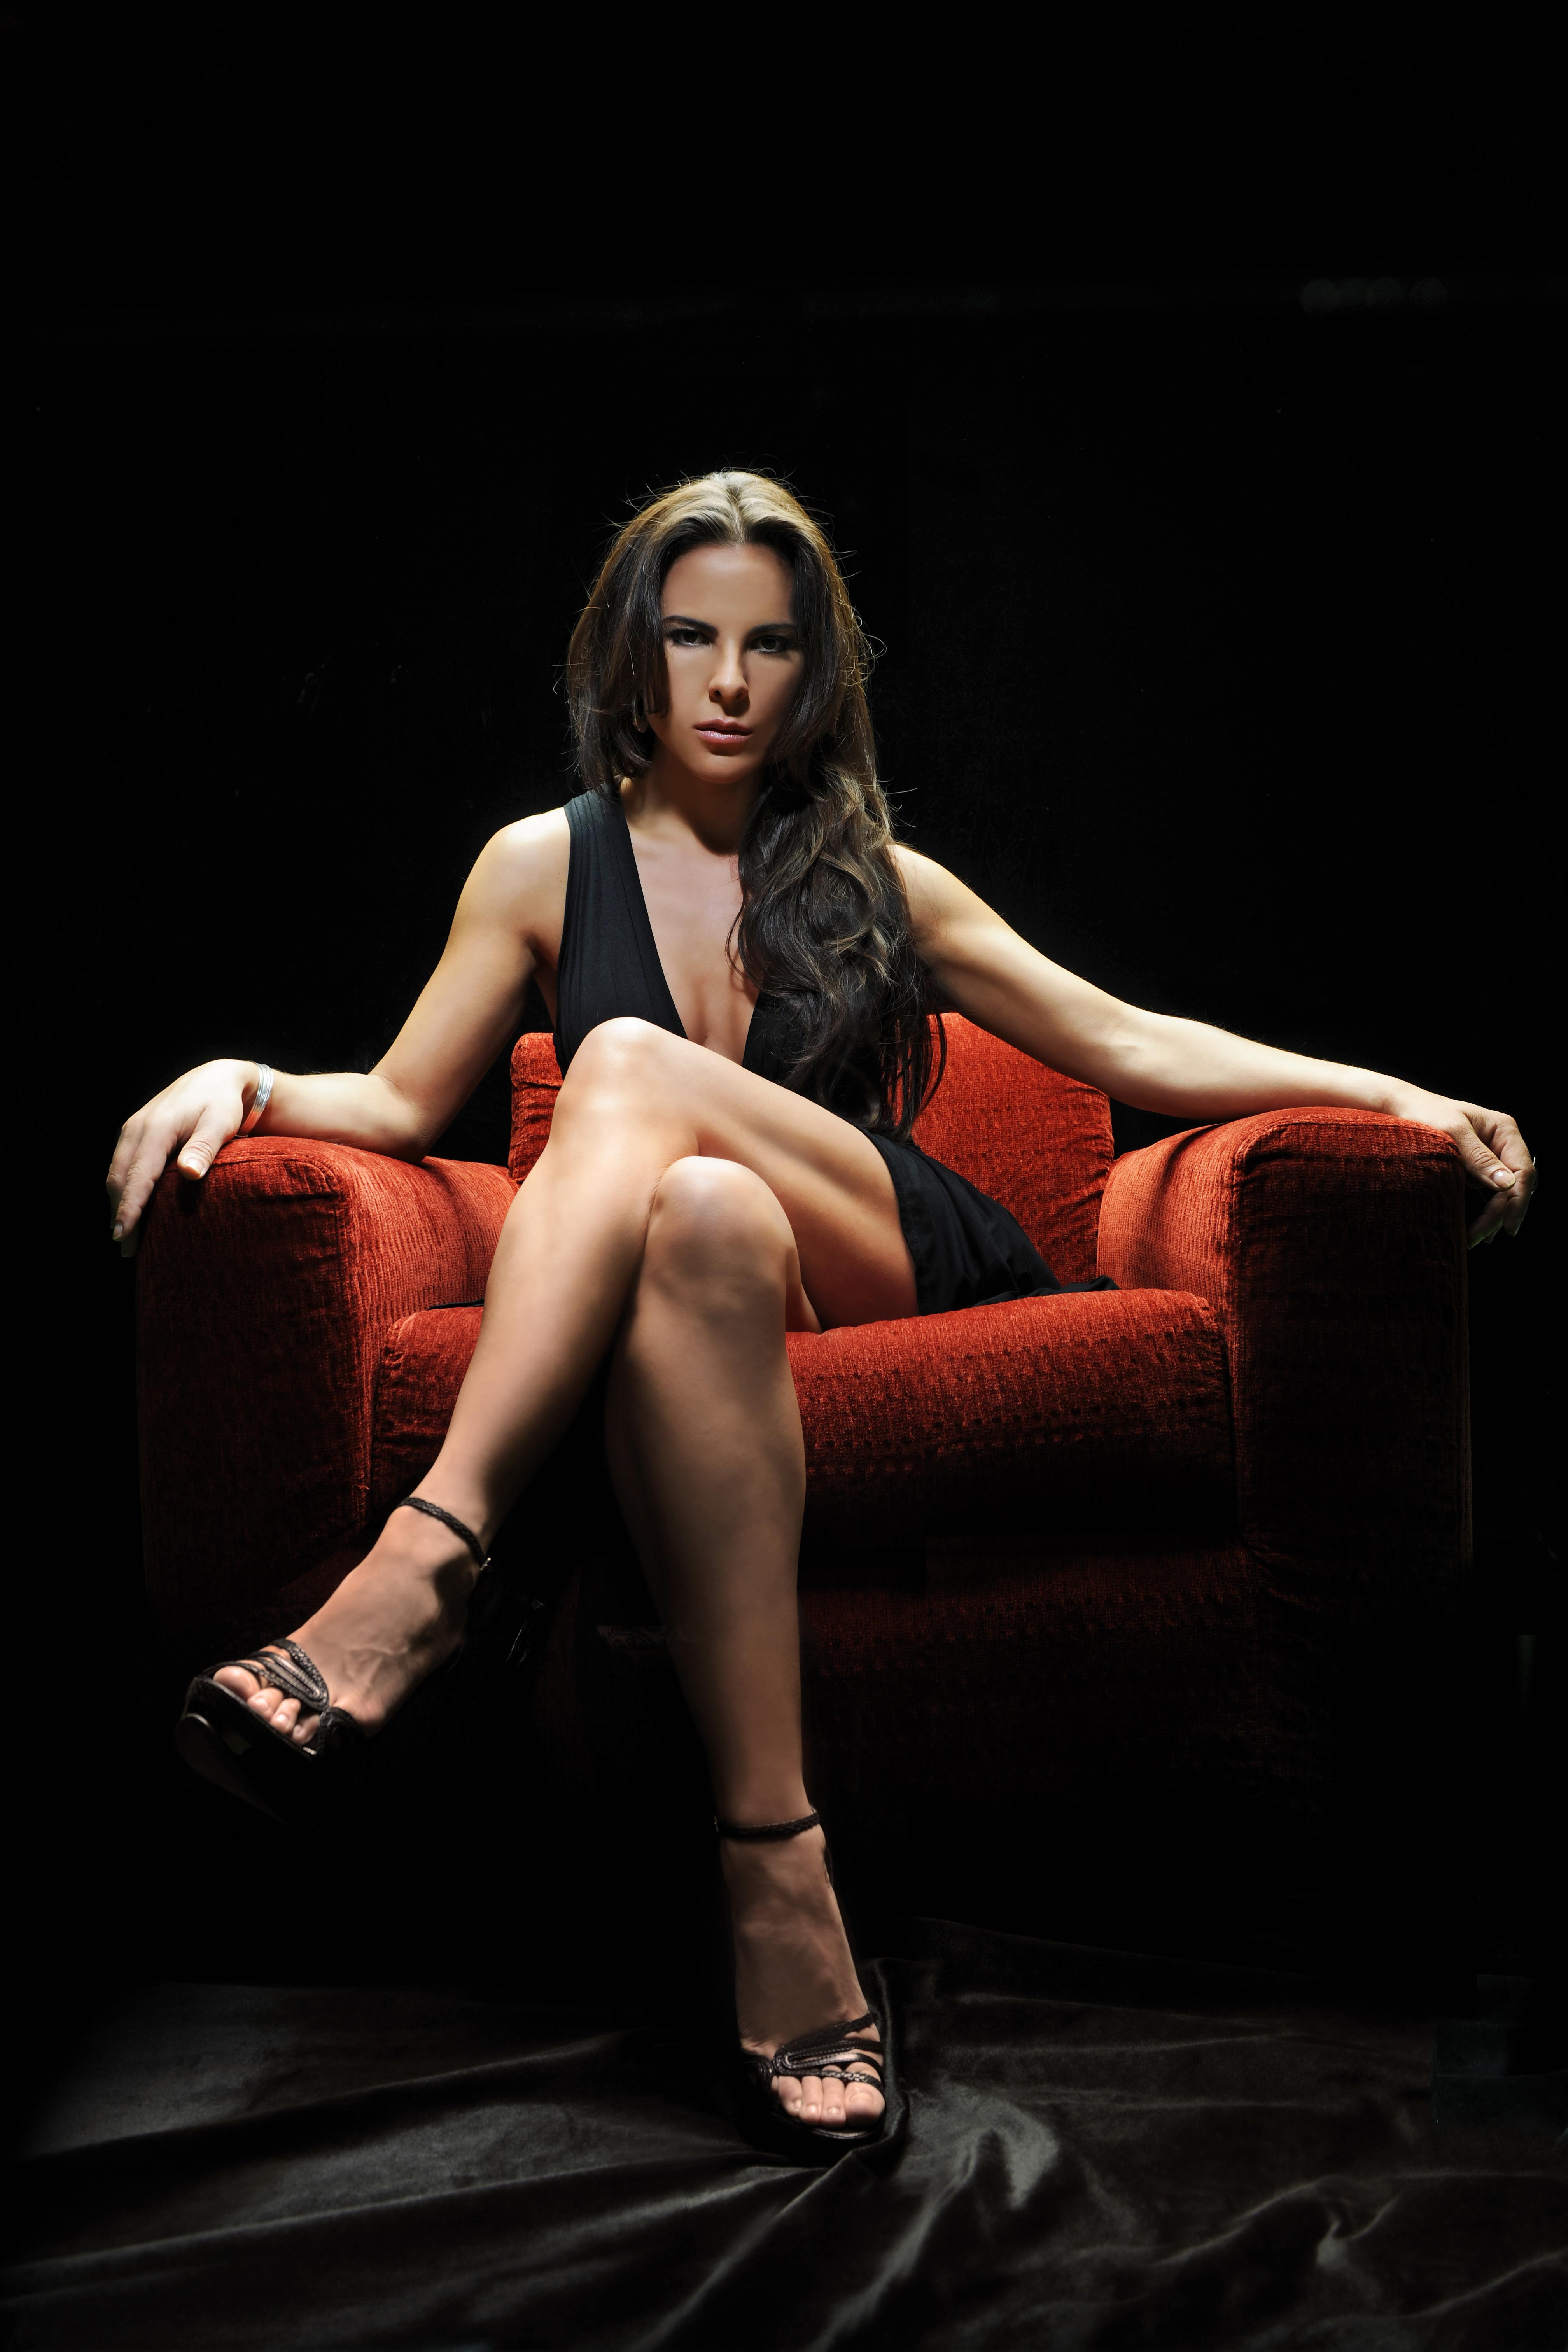 santa teresa latino personals If you are looking for affairs, mature sex, sex chat or free sex then you've come to the right page for free santa teresa, aragon sex dating erosguide personals is the leading site online.